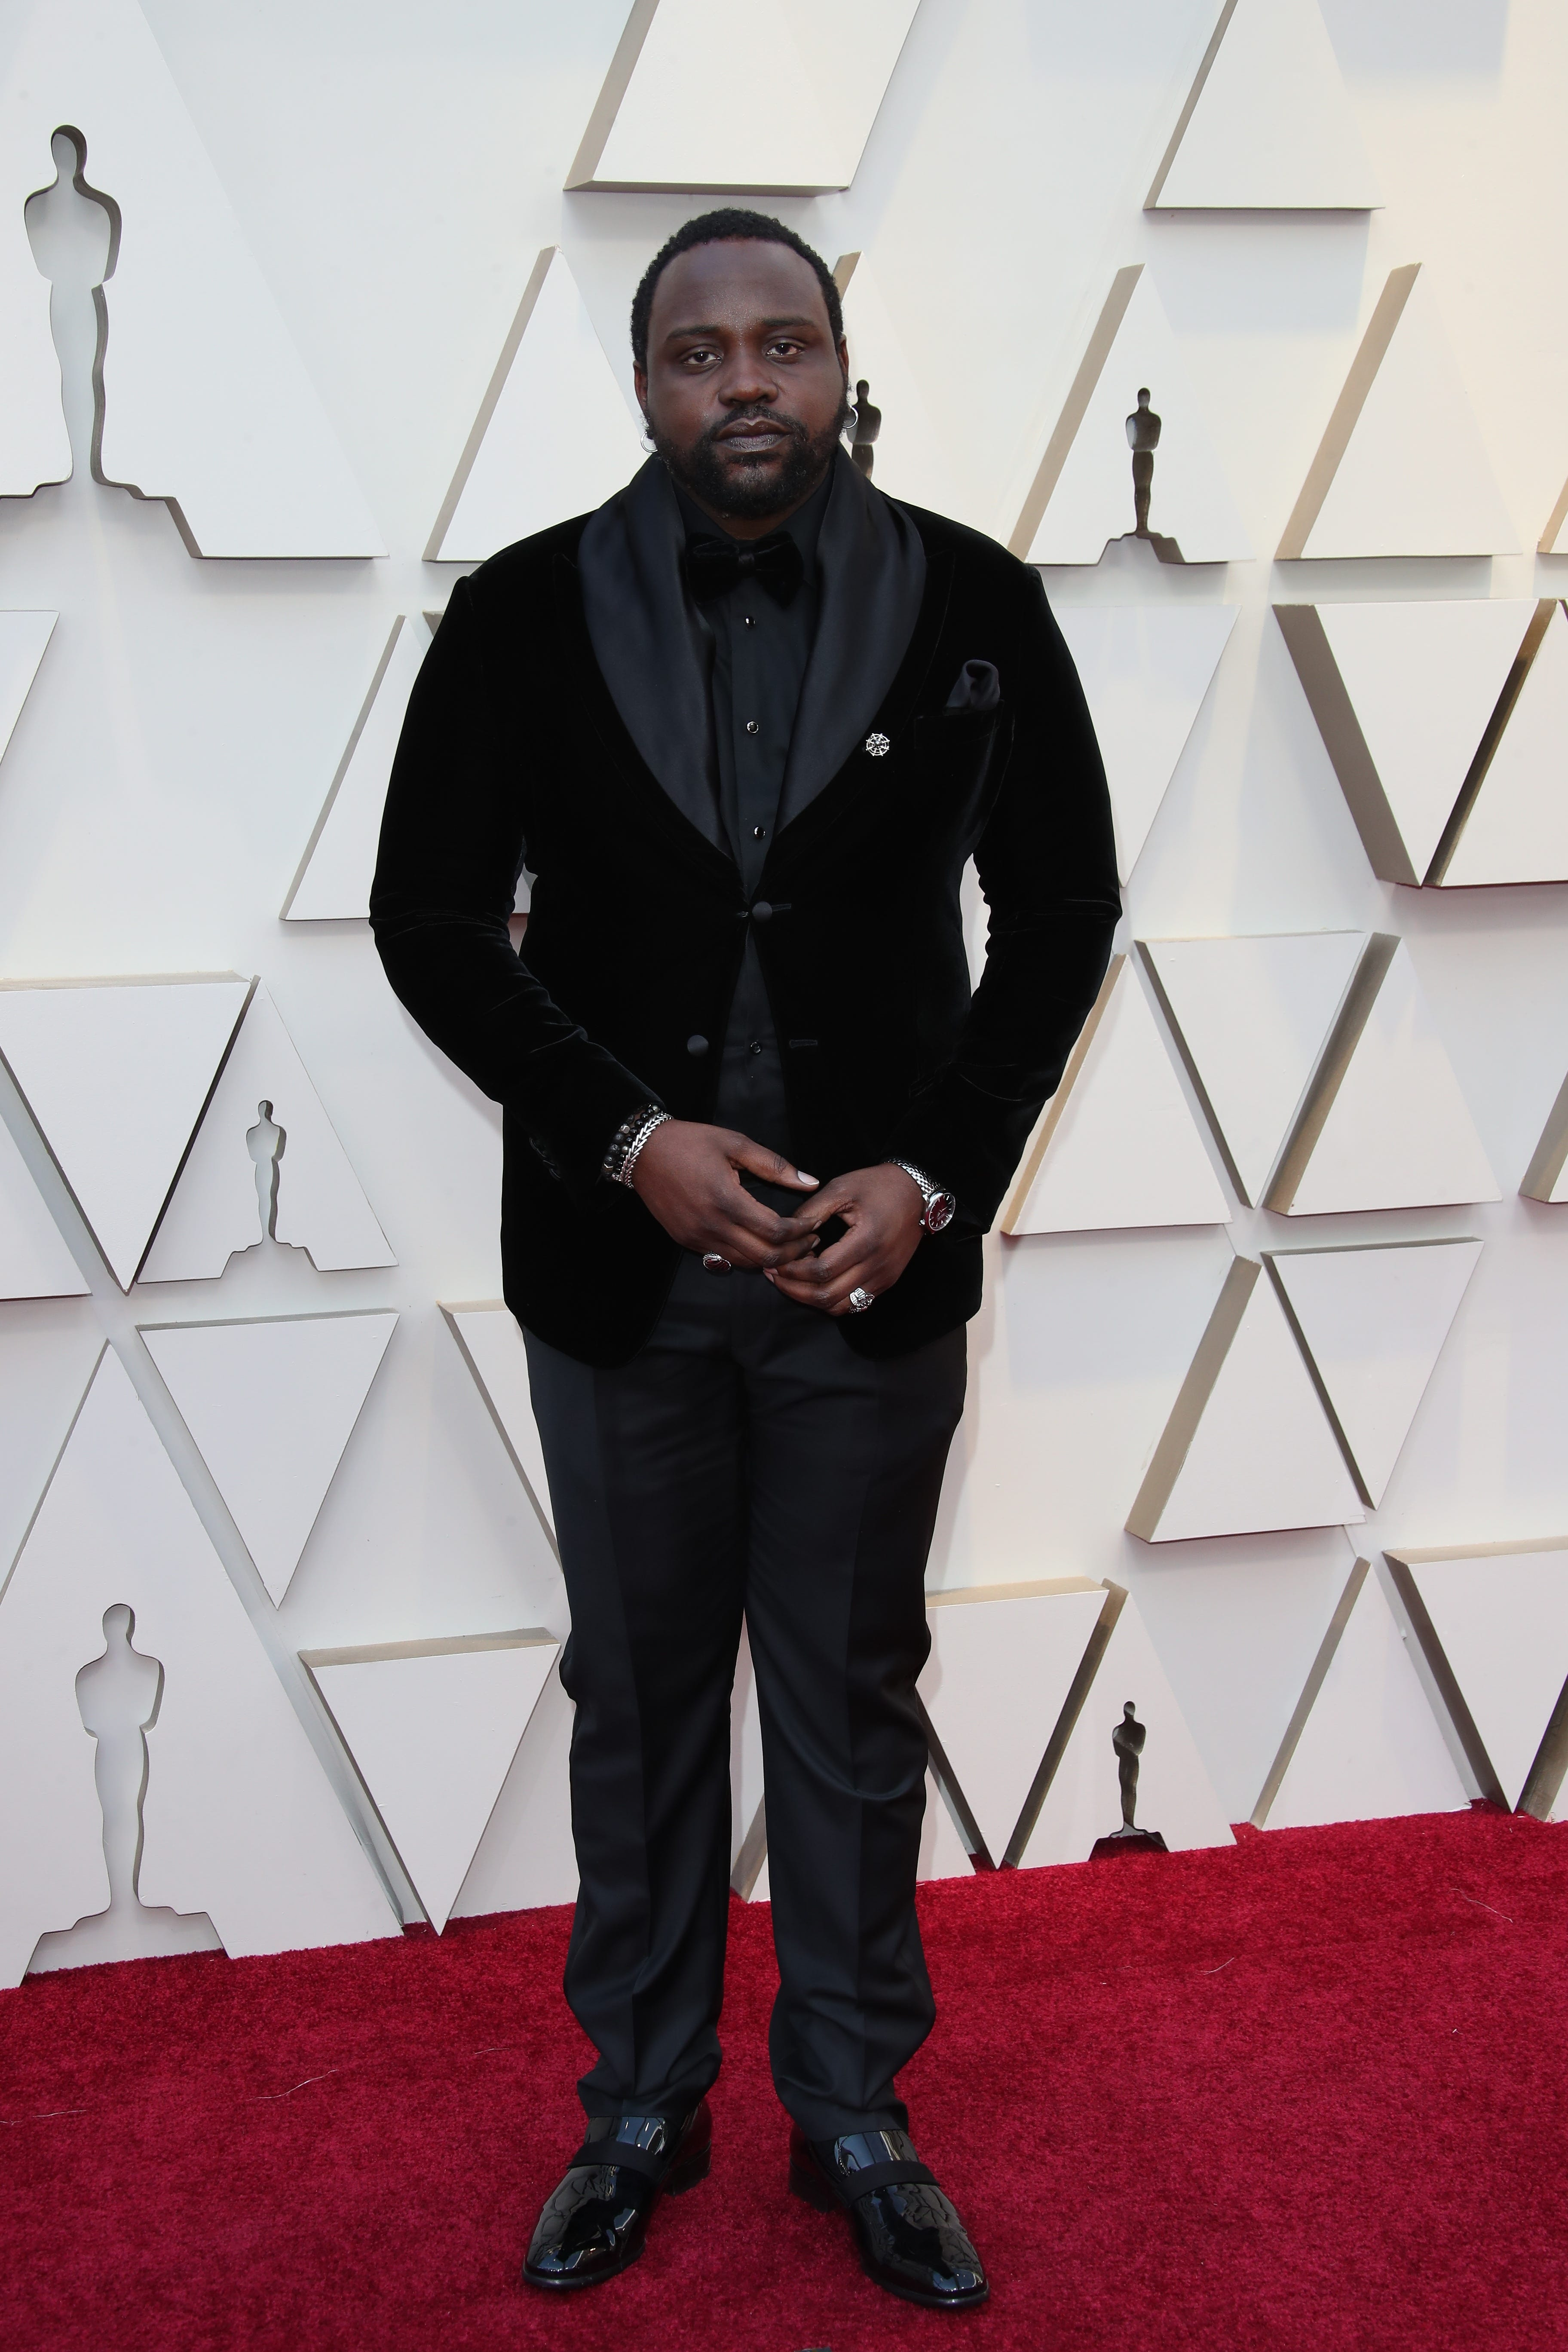 February 24, 2019; Los Angeles, CA, USA; Brian Tyree Henry arrives at the 91st Academy Awards at the Dolby Theatre. Mandatory Credit: Dan MacMedan-USA TODAY NETWORK (Via OlyDrop)